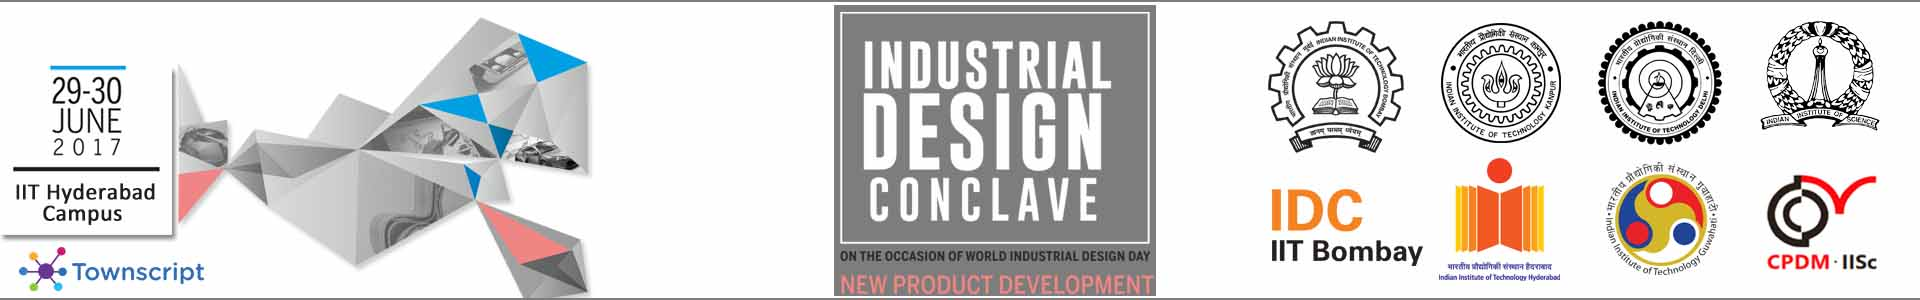 industrial-design-conclave